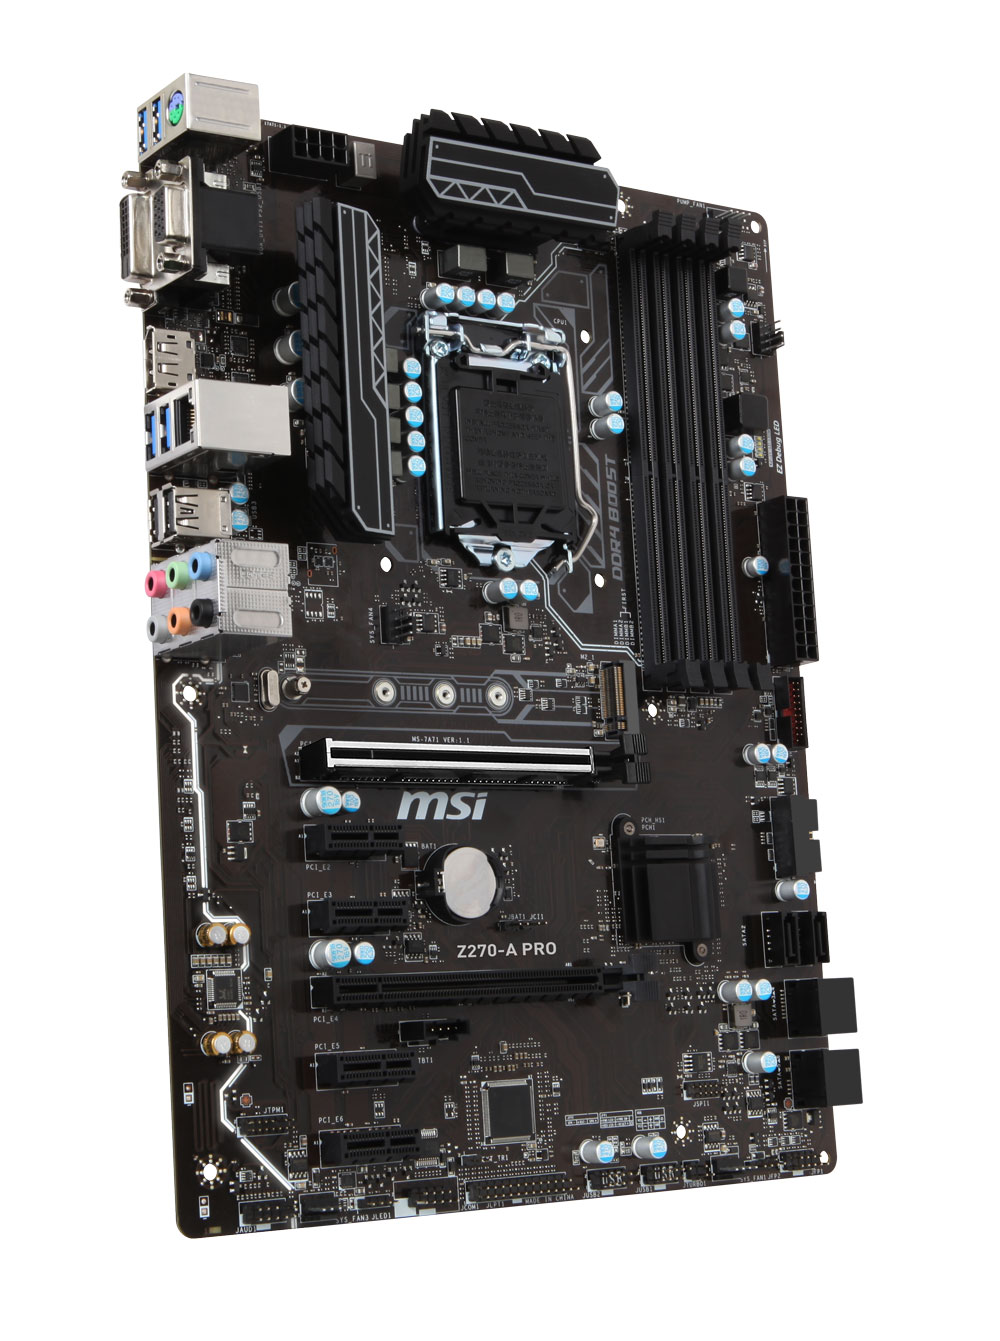 Msi Z270-a Pro Intel Motherboard - Free Shipping